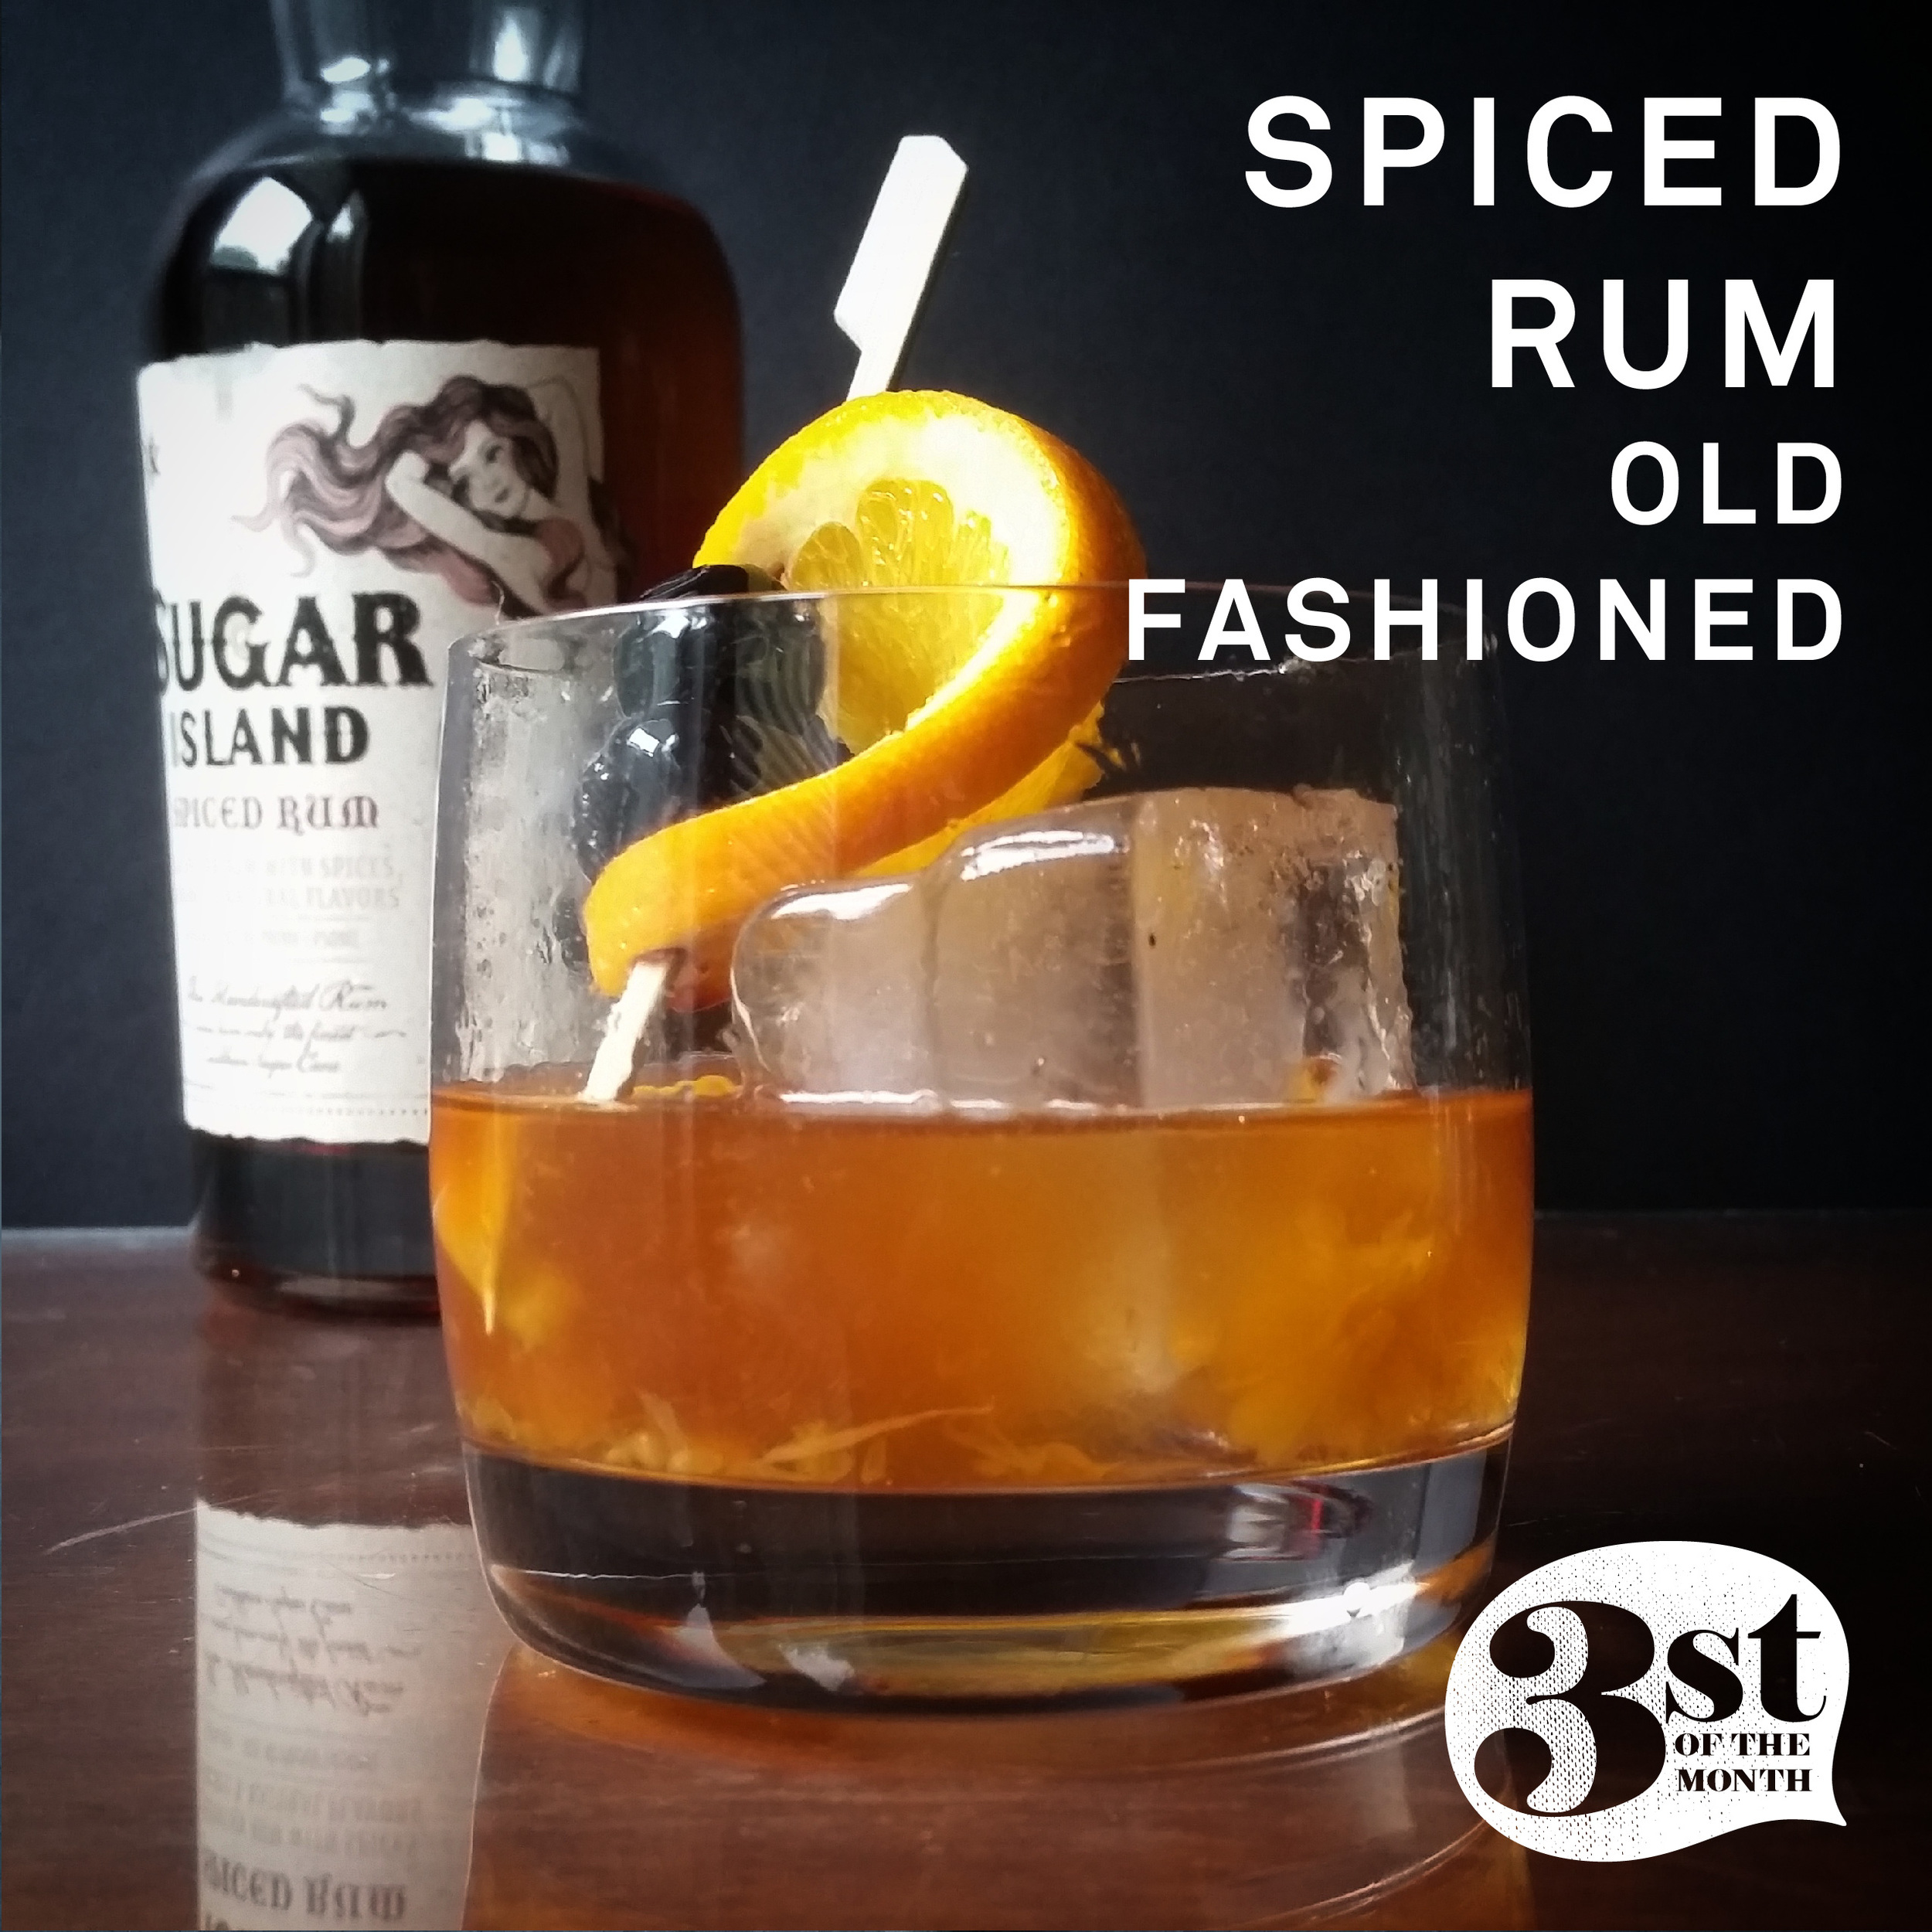 A new spin on an Old Fashioned - the Spiced Rum Old Fashioned from 3st of the Month